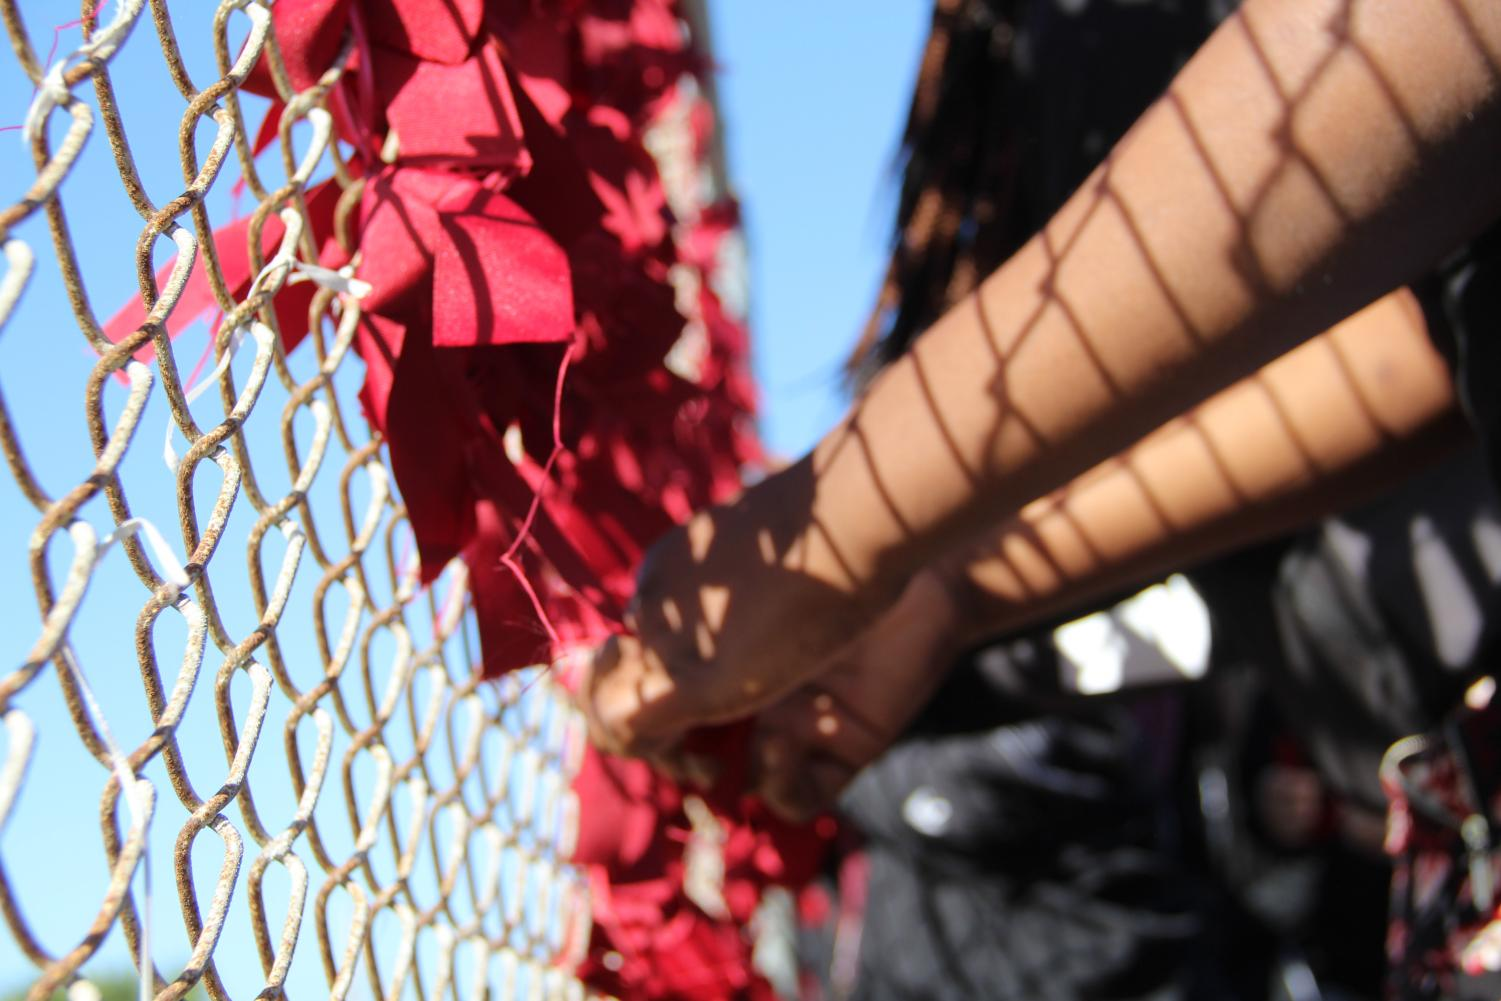 Tying+ribbons+on+the+fence